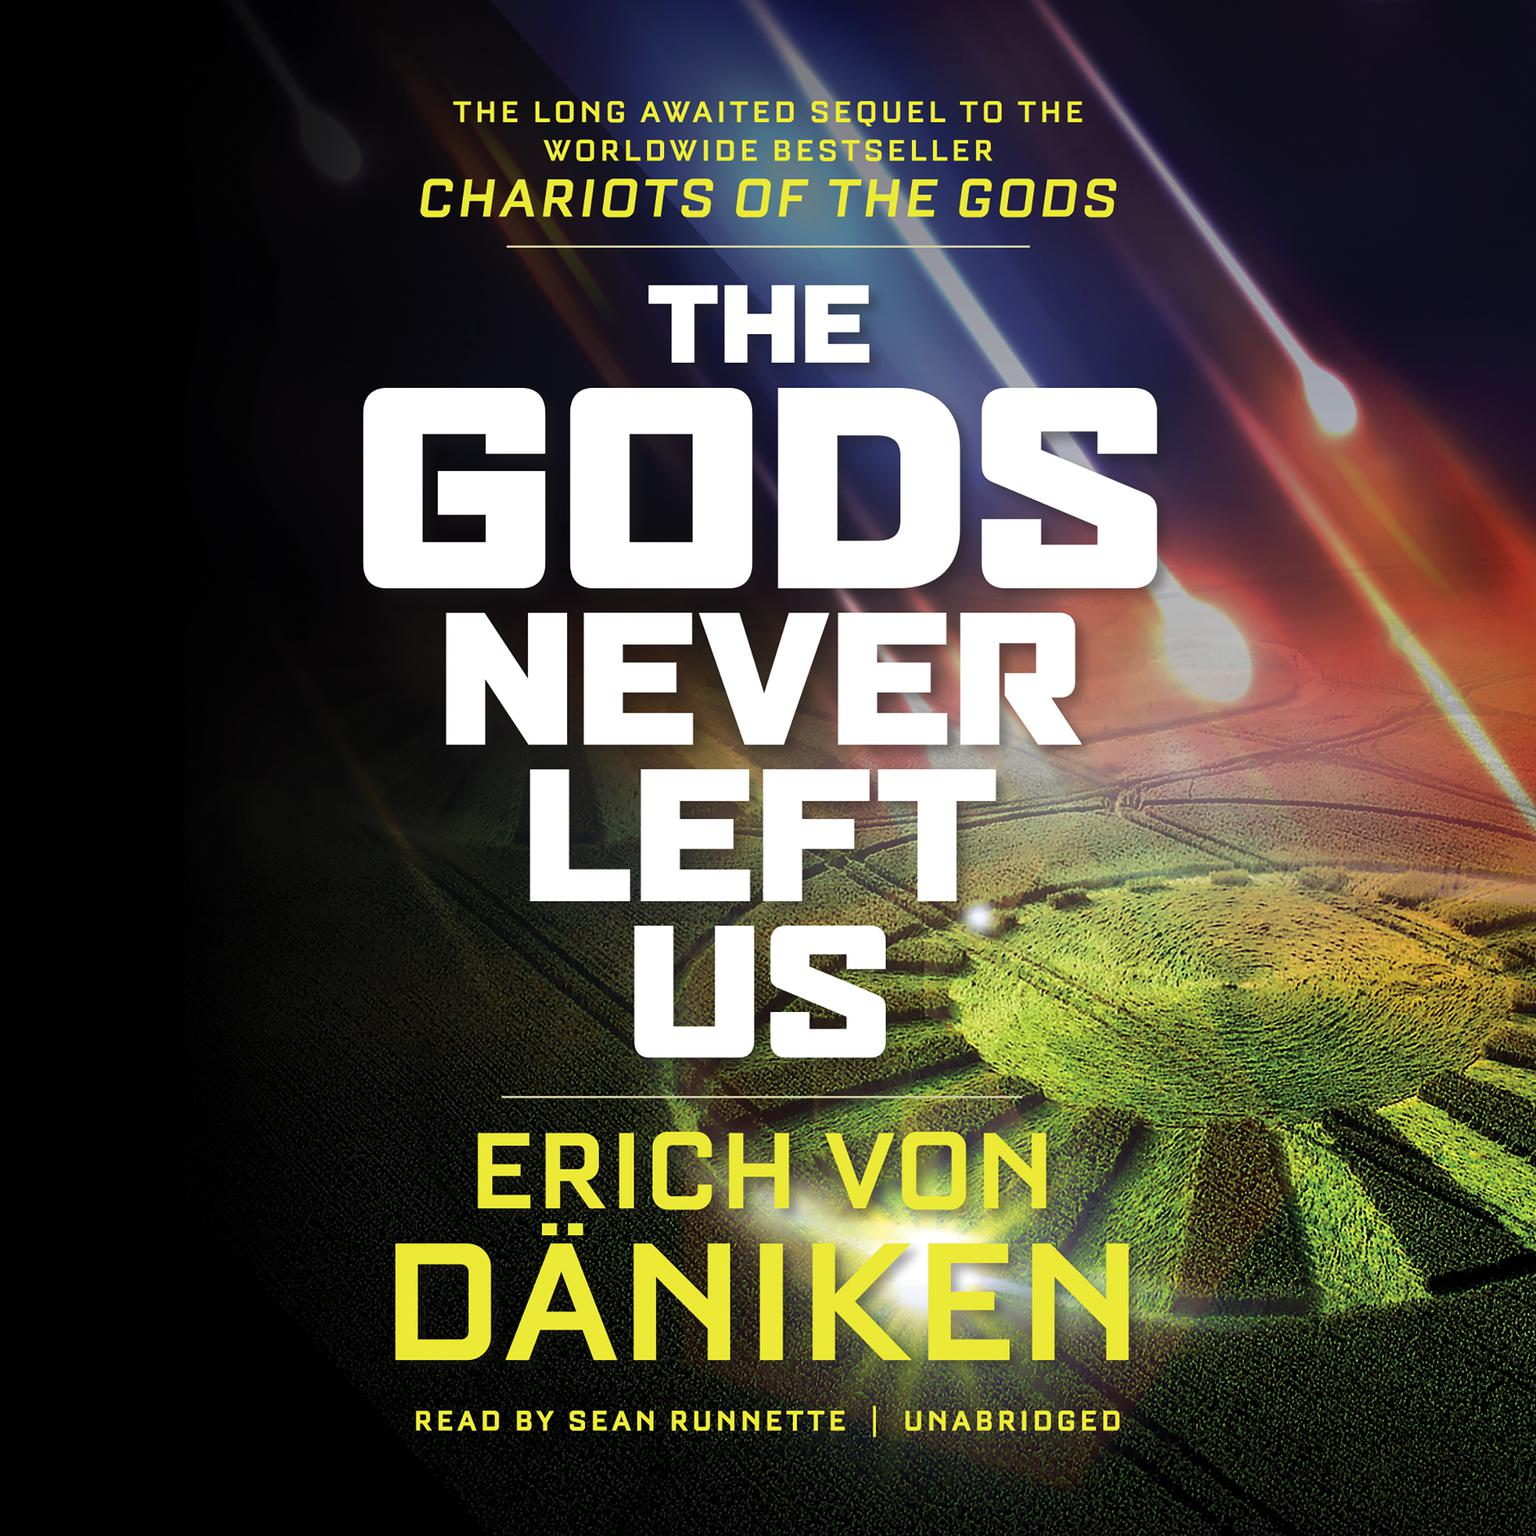 Printable The Gods Never Left Us: The Long-Awaited Sequel to the Worldwide Bestseller Chariots of the Gods Audiobook Cover Art